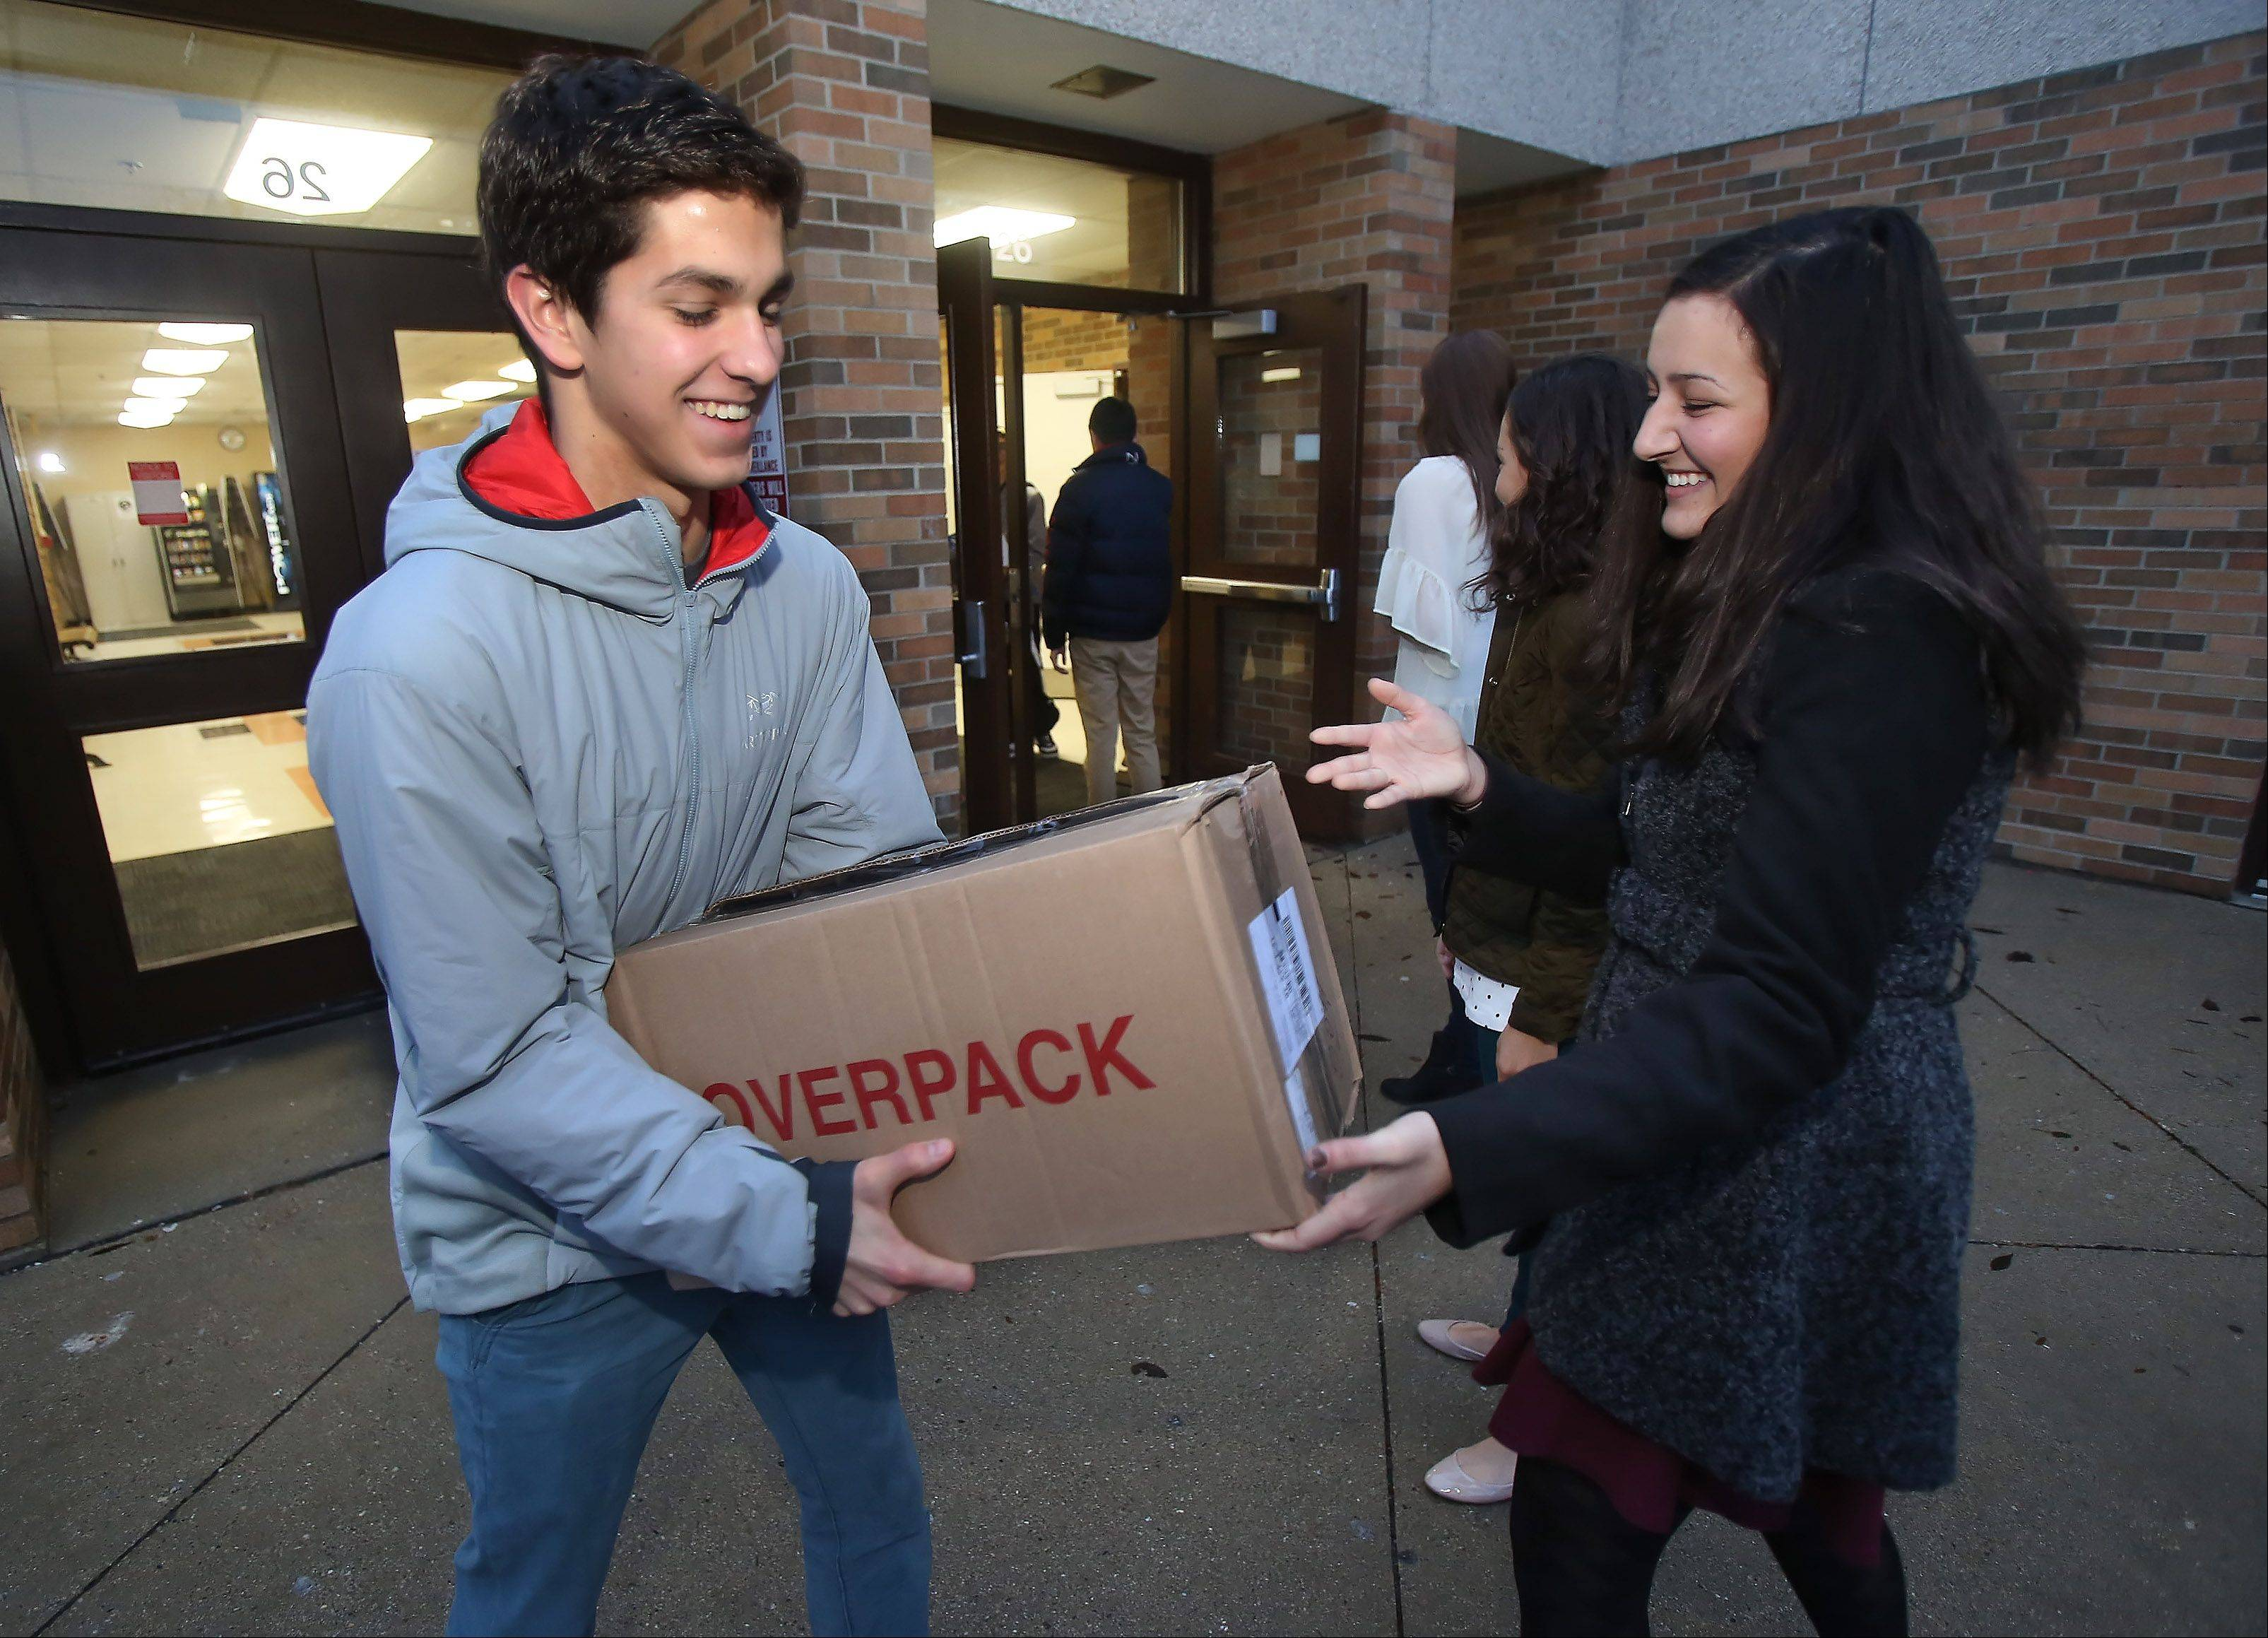 Libertyville High School junior Mark Boynton receives a box from Alexandria El Ghatit as they work in a human food chain Wednesday morning to load trucks with boxes of canned goods for Libertyville Township food pantry. The student council collected canned goods, paper goods and toiletries and monetary donations for the food pantry and other organizations.